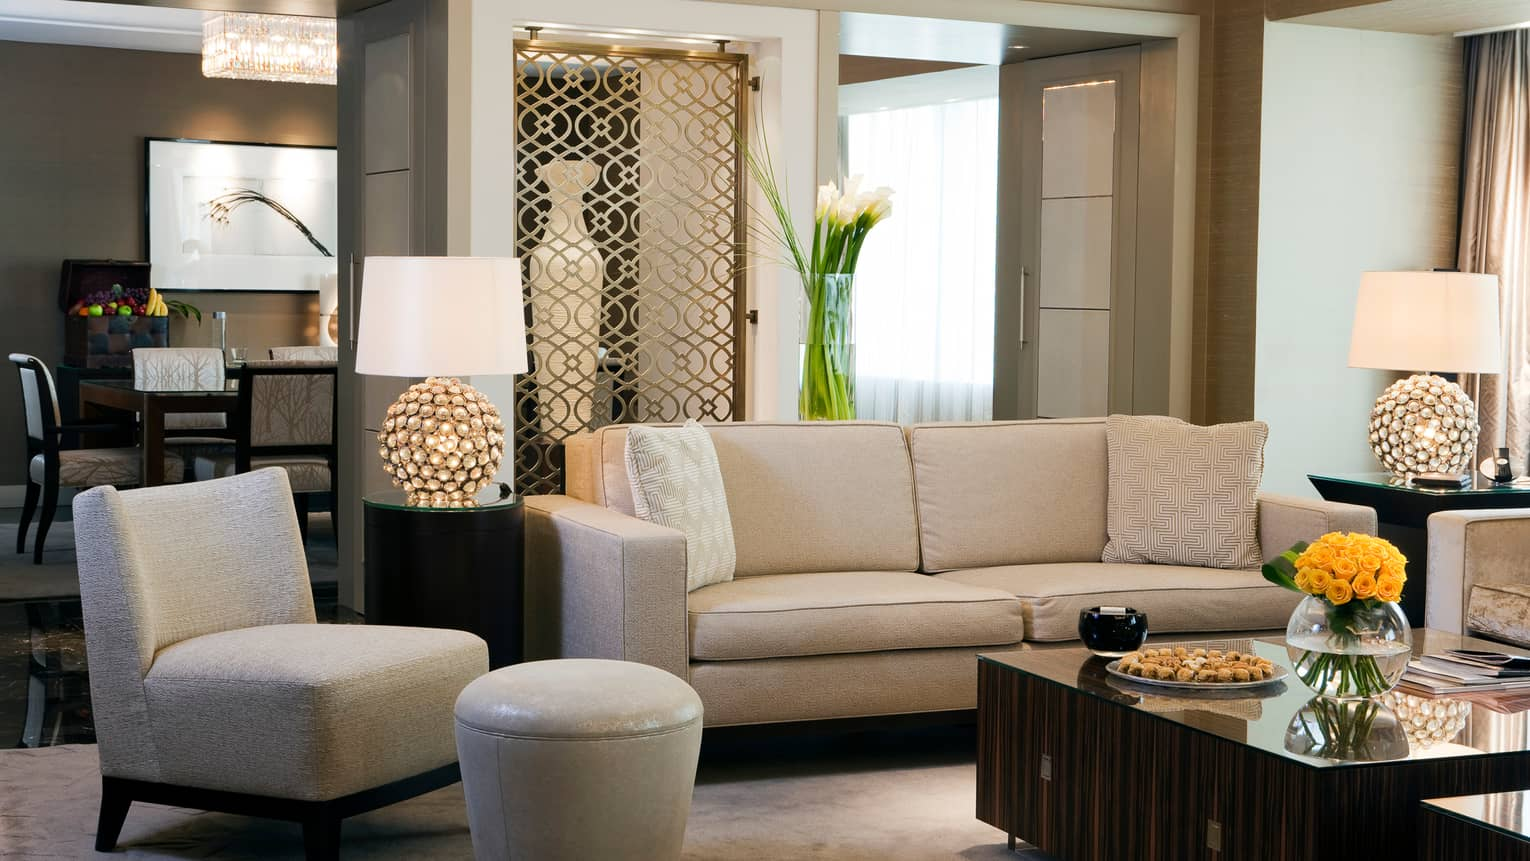 Suite living room with white sofa, chair and ottoman, large wood coffee table, decorative lamp and screen